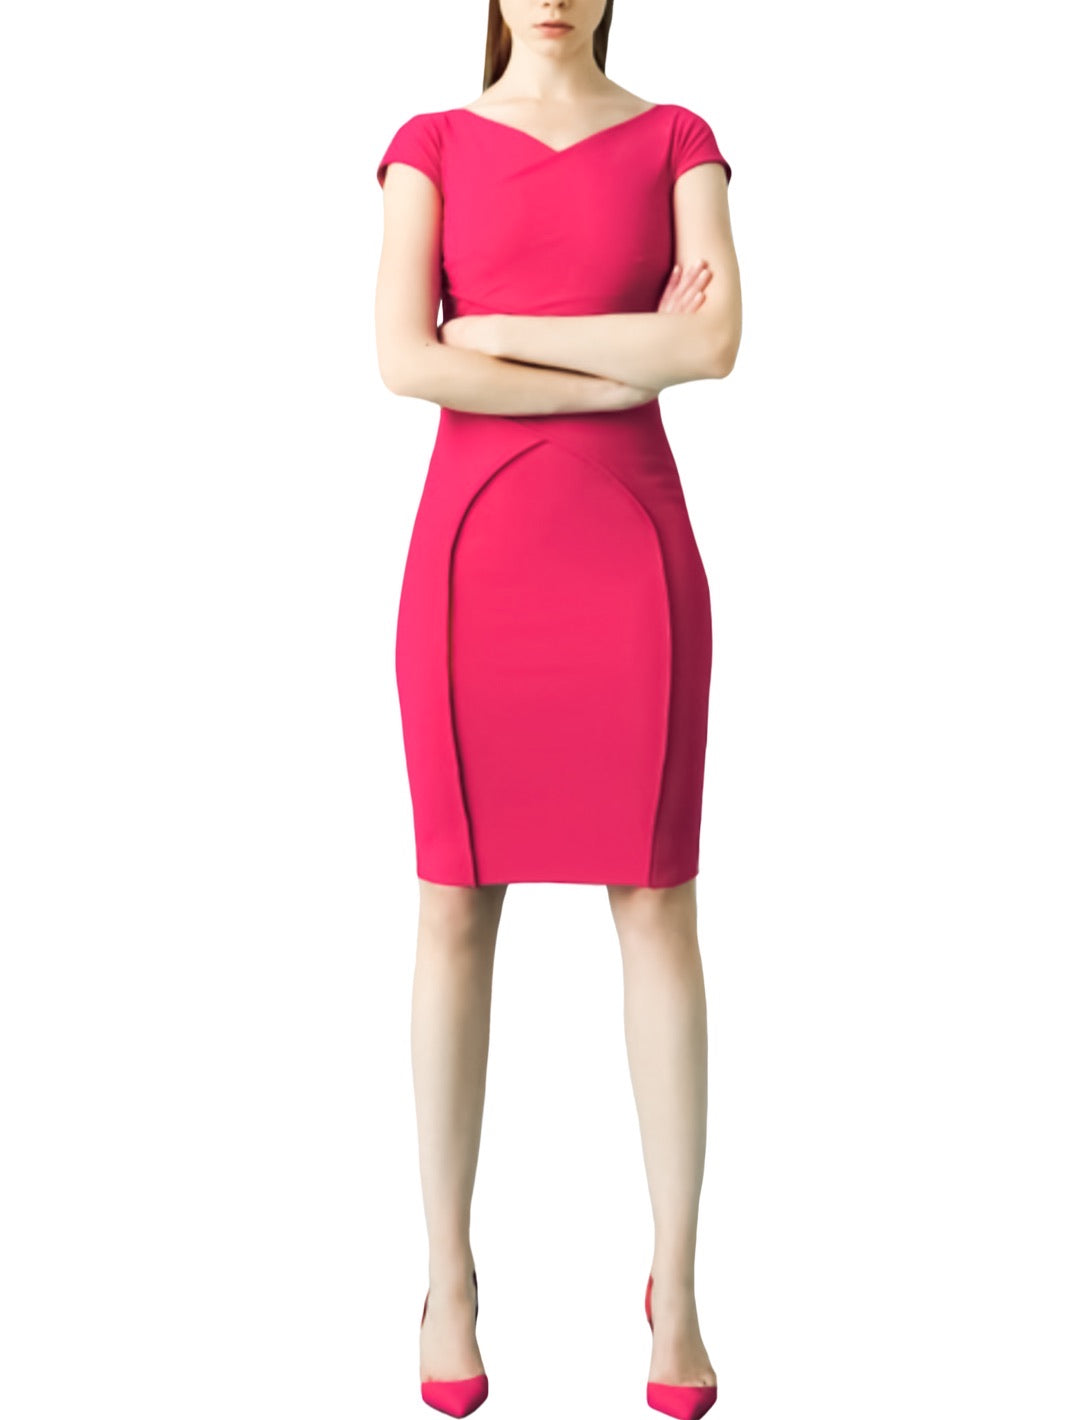 Merissa Cap-Sleeve Sheath Dress - The Bobby Boga